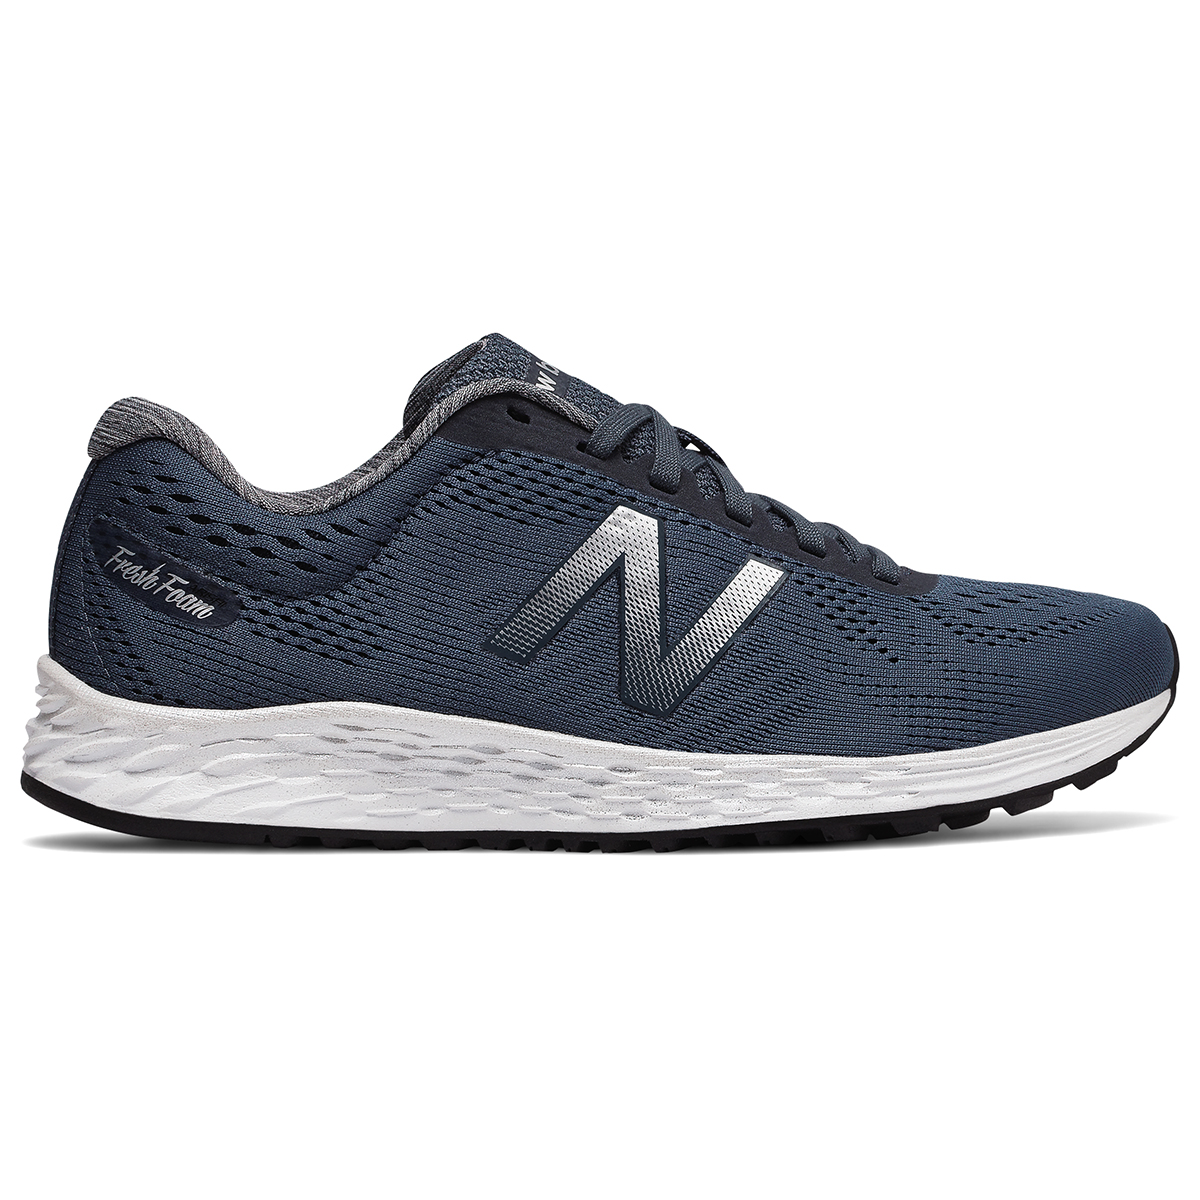 New Balance Women's Arishi V1 Fresh Foam Running Shoes - Black, 6.5